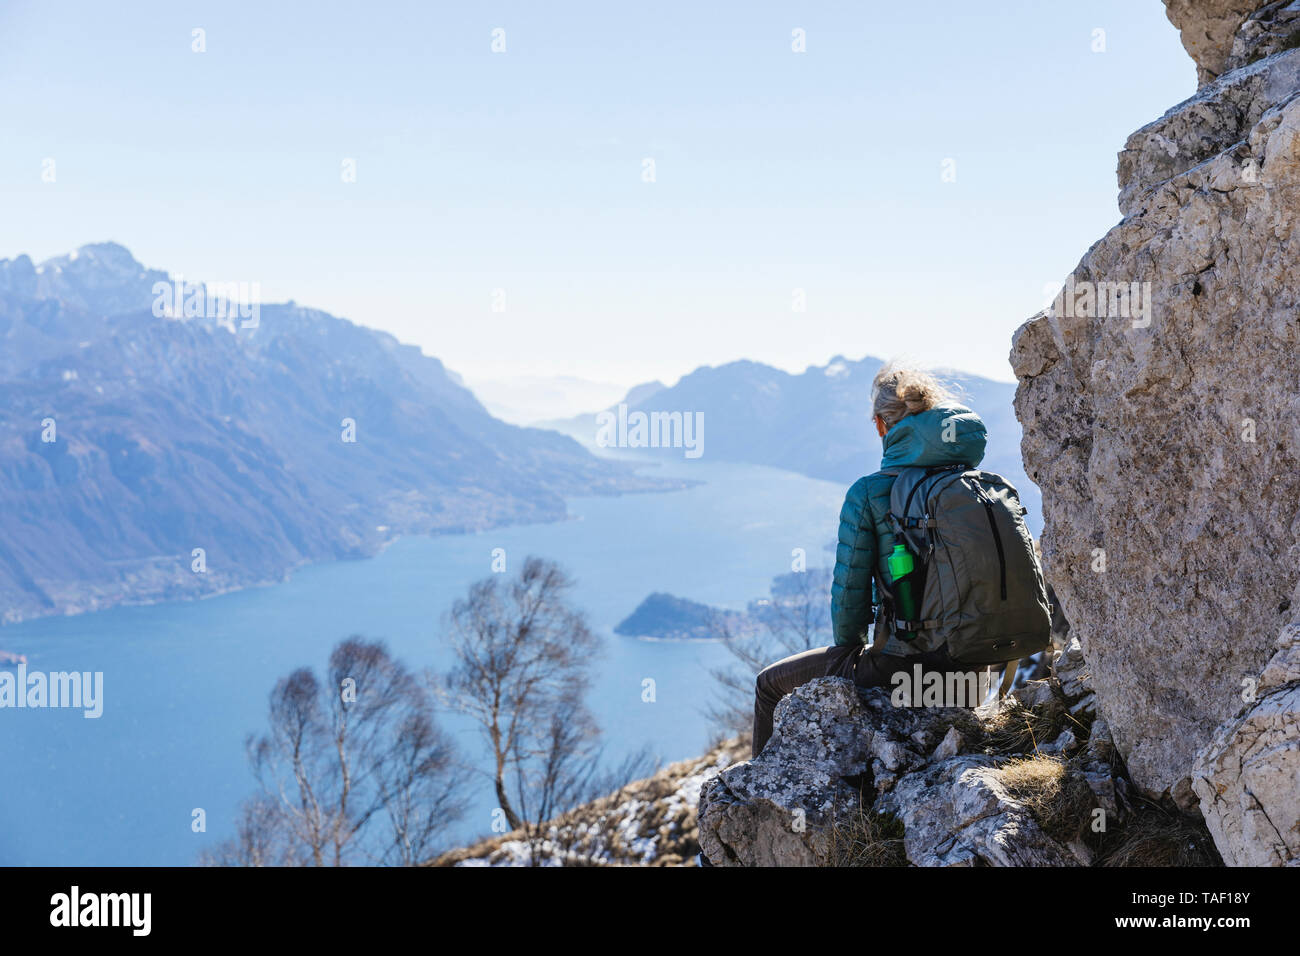 Italy, Como, Lecco, woman on a hiking trip in the mountains above Lake Como sitting on a rock enjoying the view - Stock Image